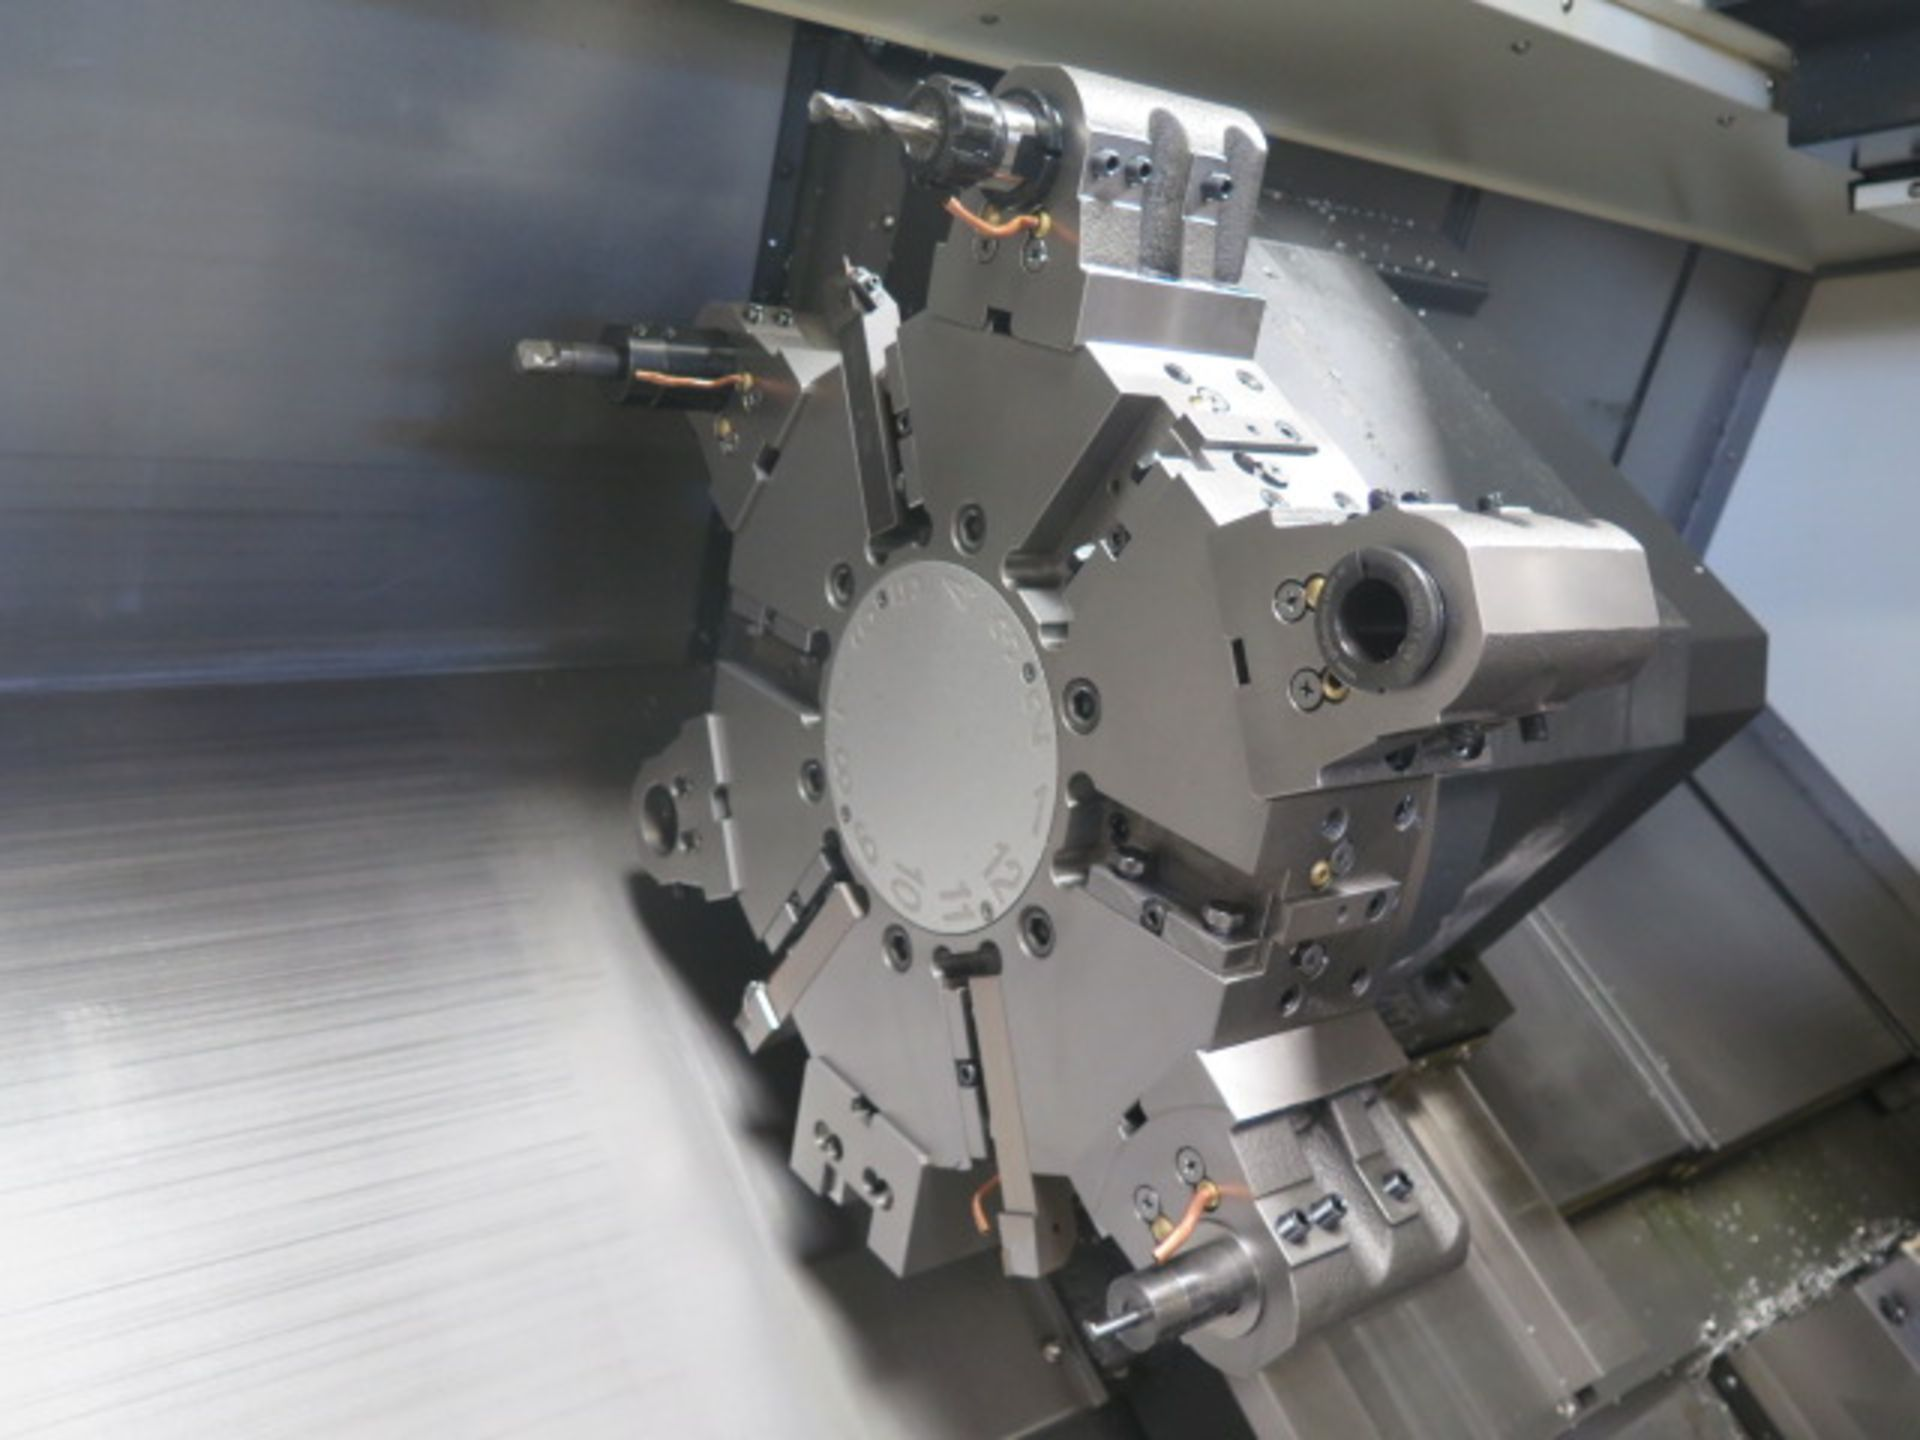 2016 Hyundai WIA L300LA CNC Turning Center s/n G3726-0083 w/ Fanuc i-Series Controls, SOLD AS IS - Image 9 of 20